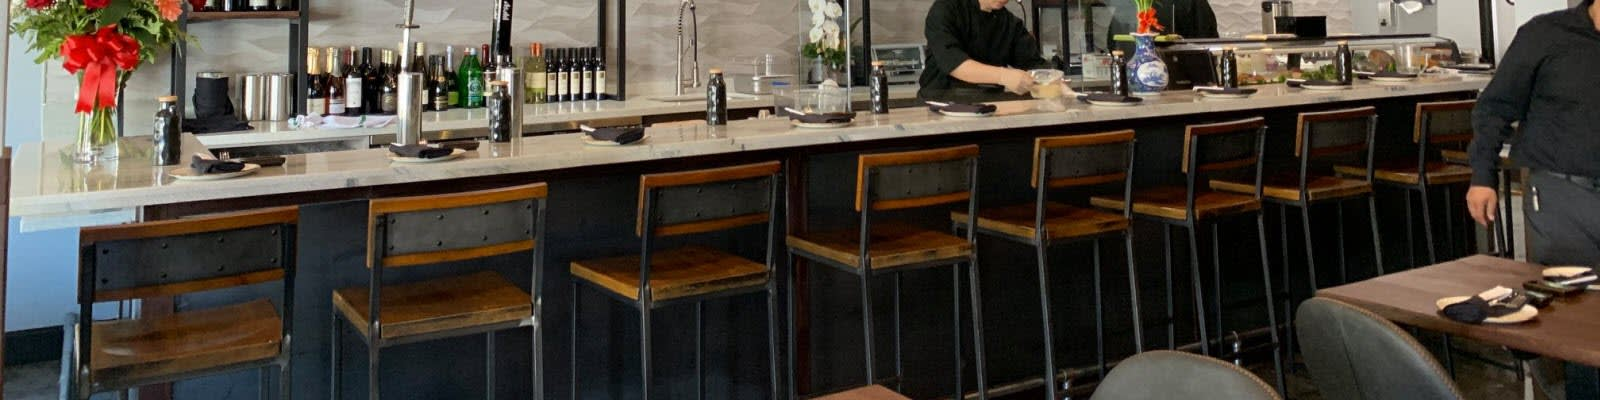 Distressed industrial restaurant bar stools